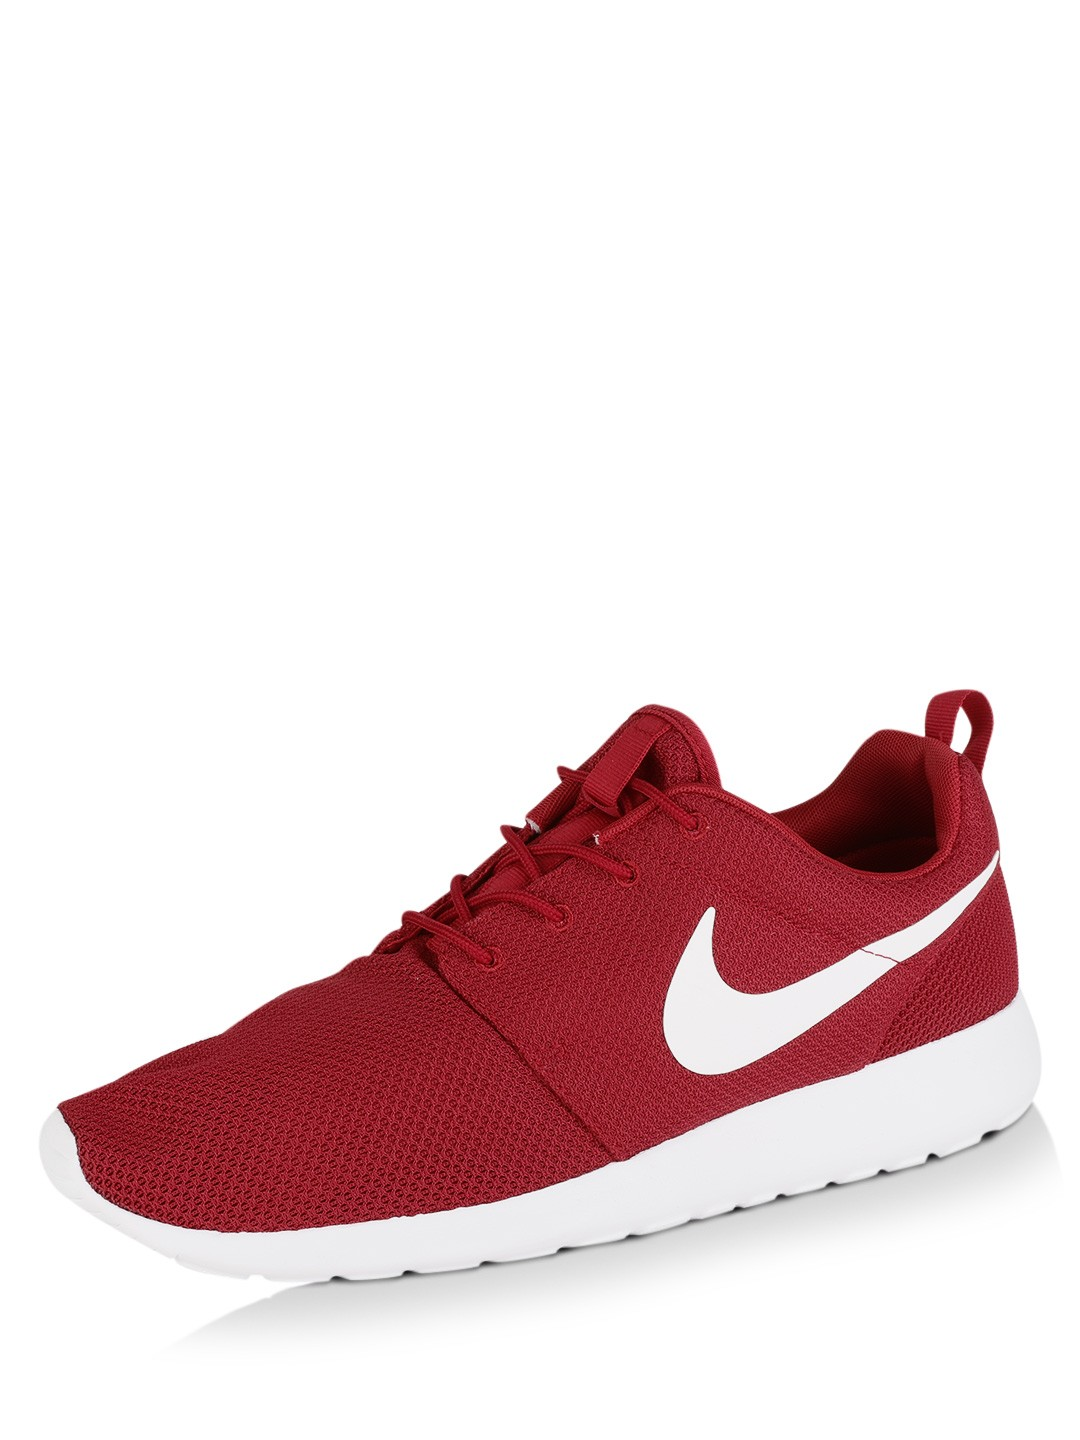 premium selection 3d85a 36e01 Buy Nike Red/White Roshe One Trainers for Men Online in India